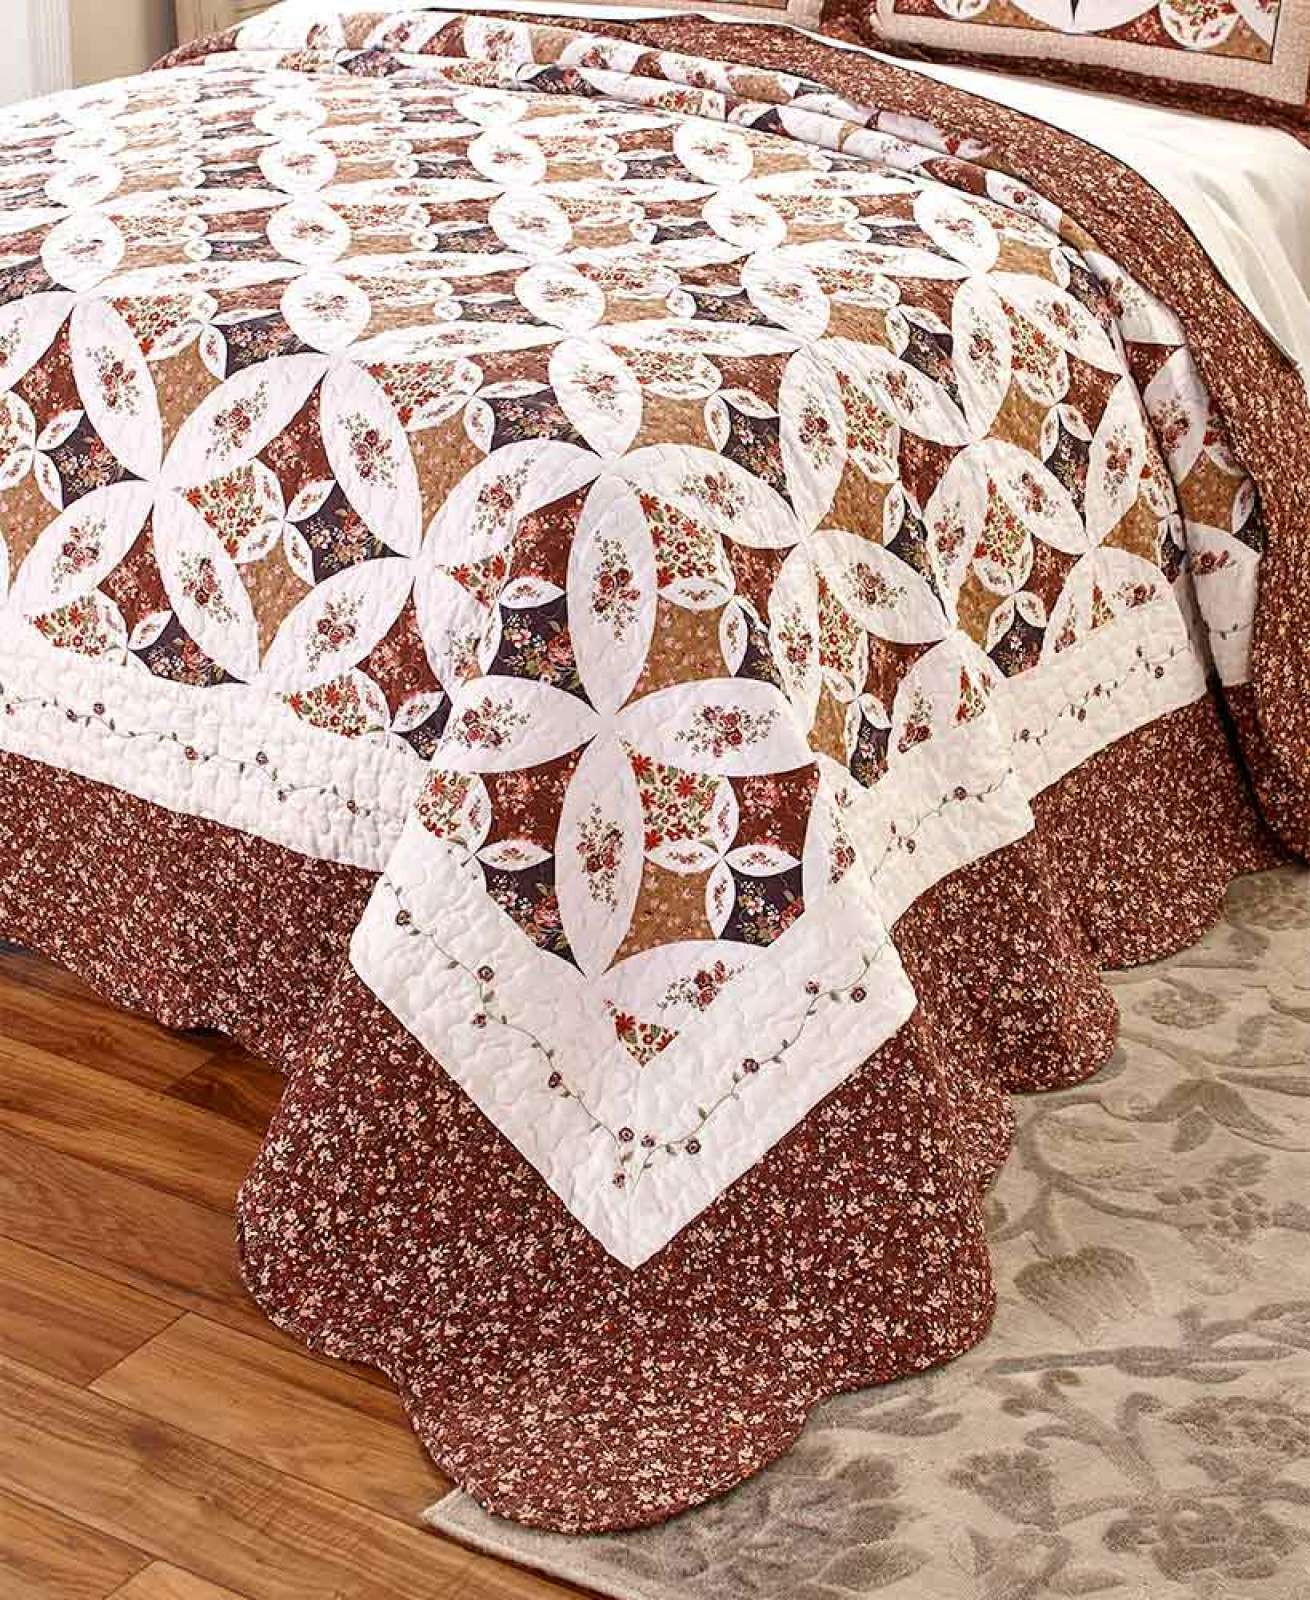 1-PC SPICE KING OVERGrößeD GEORGIA BED QUILT CLASSIC WEDDING RING PATTERN